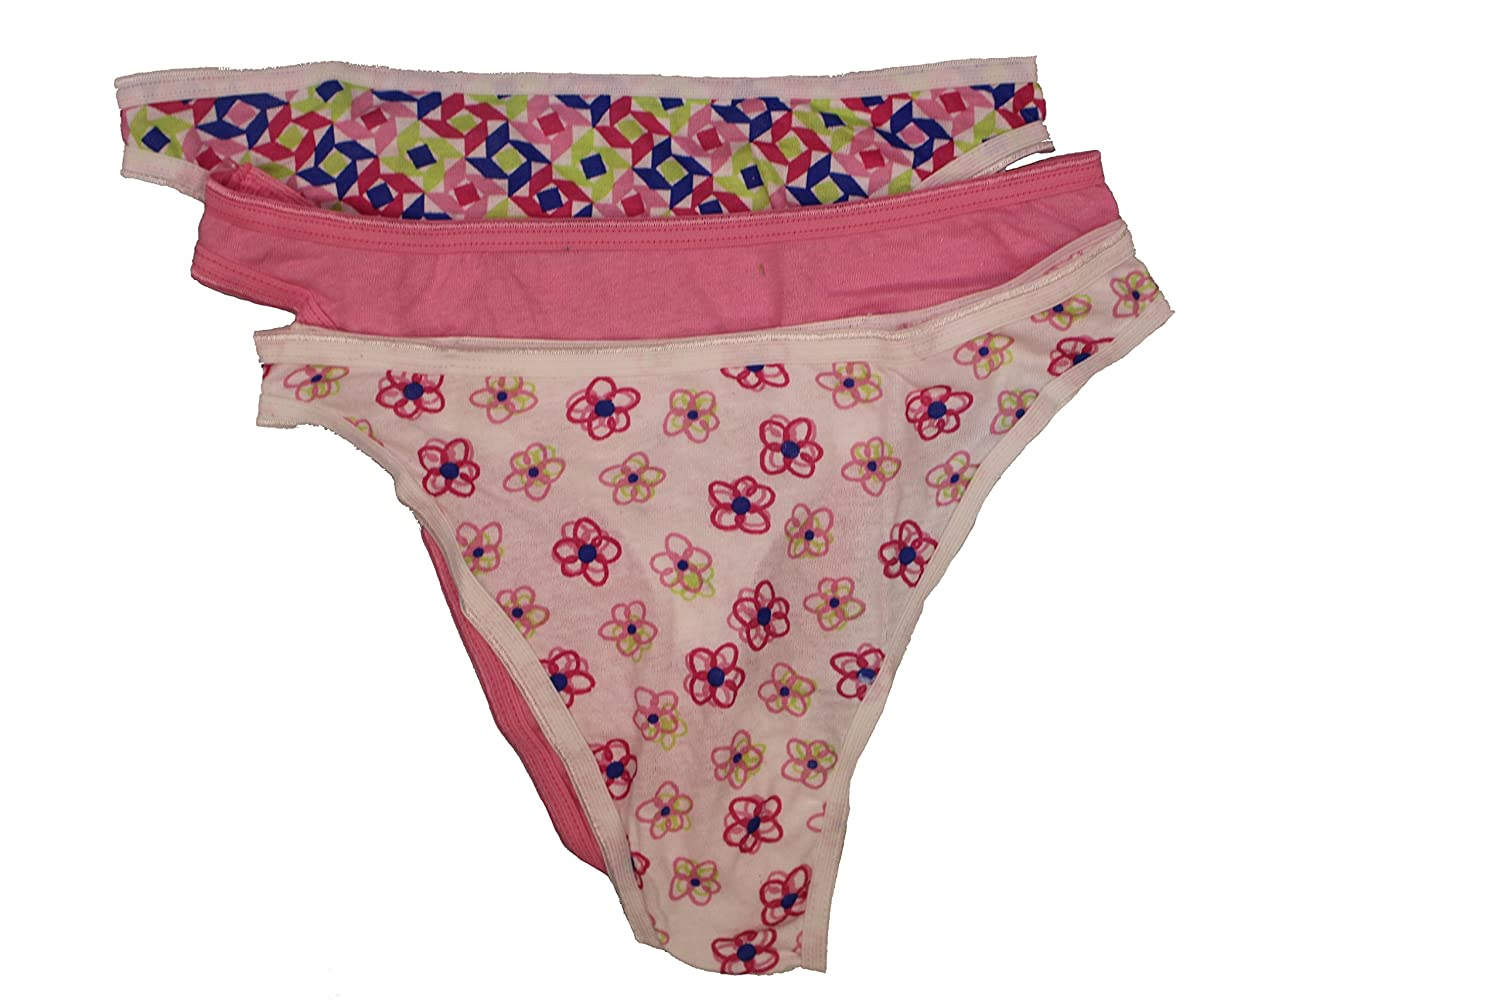 cb4755214d84 Fruit of the Loom Women 100% Cotton Thongs, Print & Color May Vary  (7(Large), Multi 3-Pack) at Amazon Women's Clothing store: